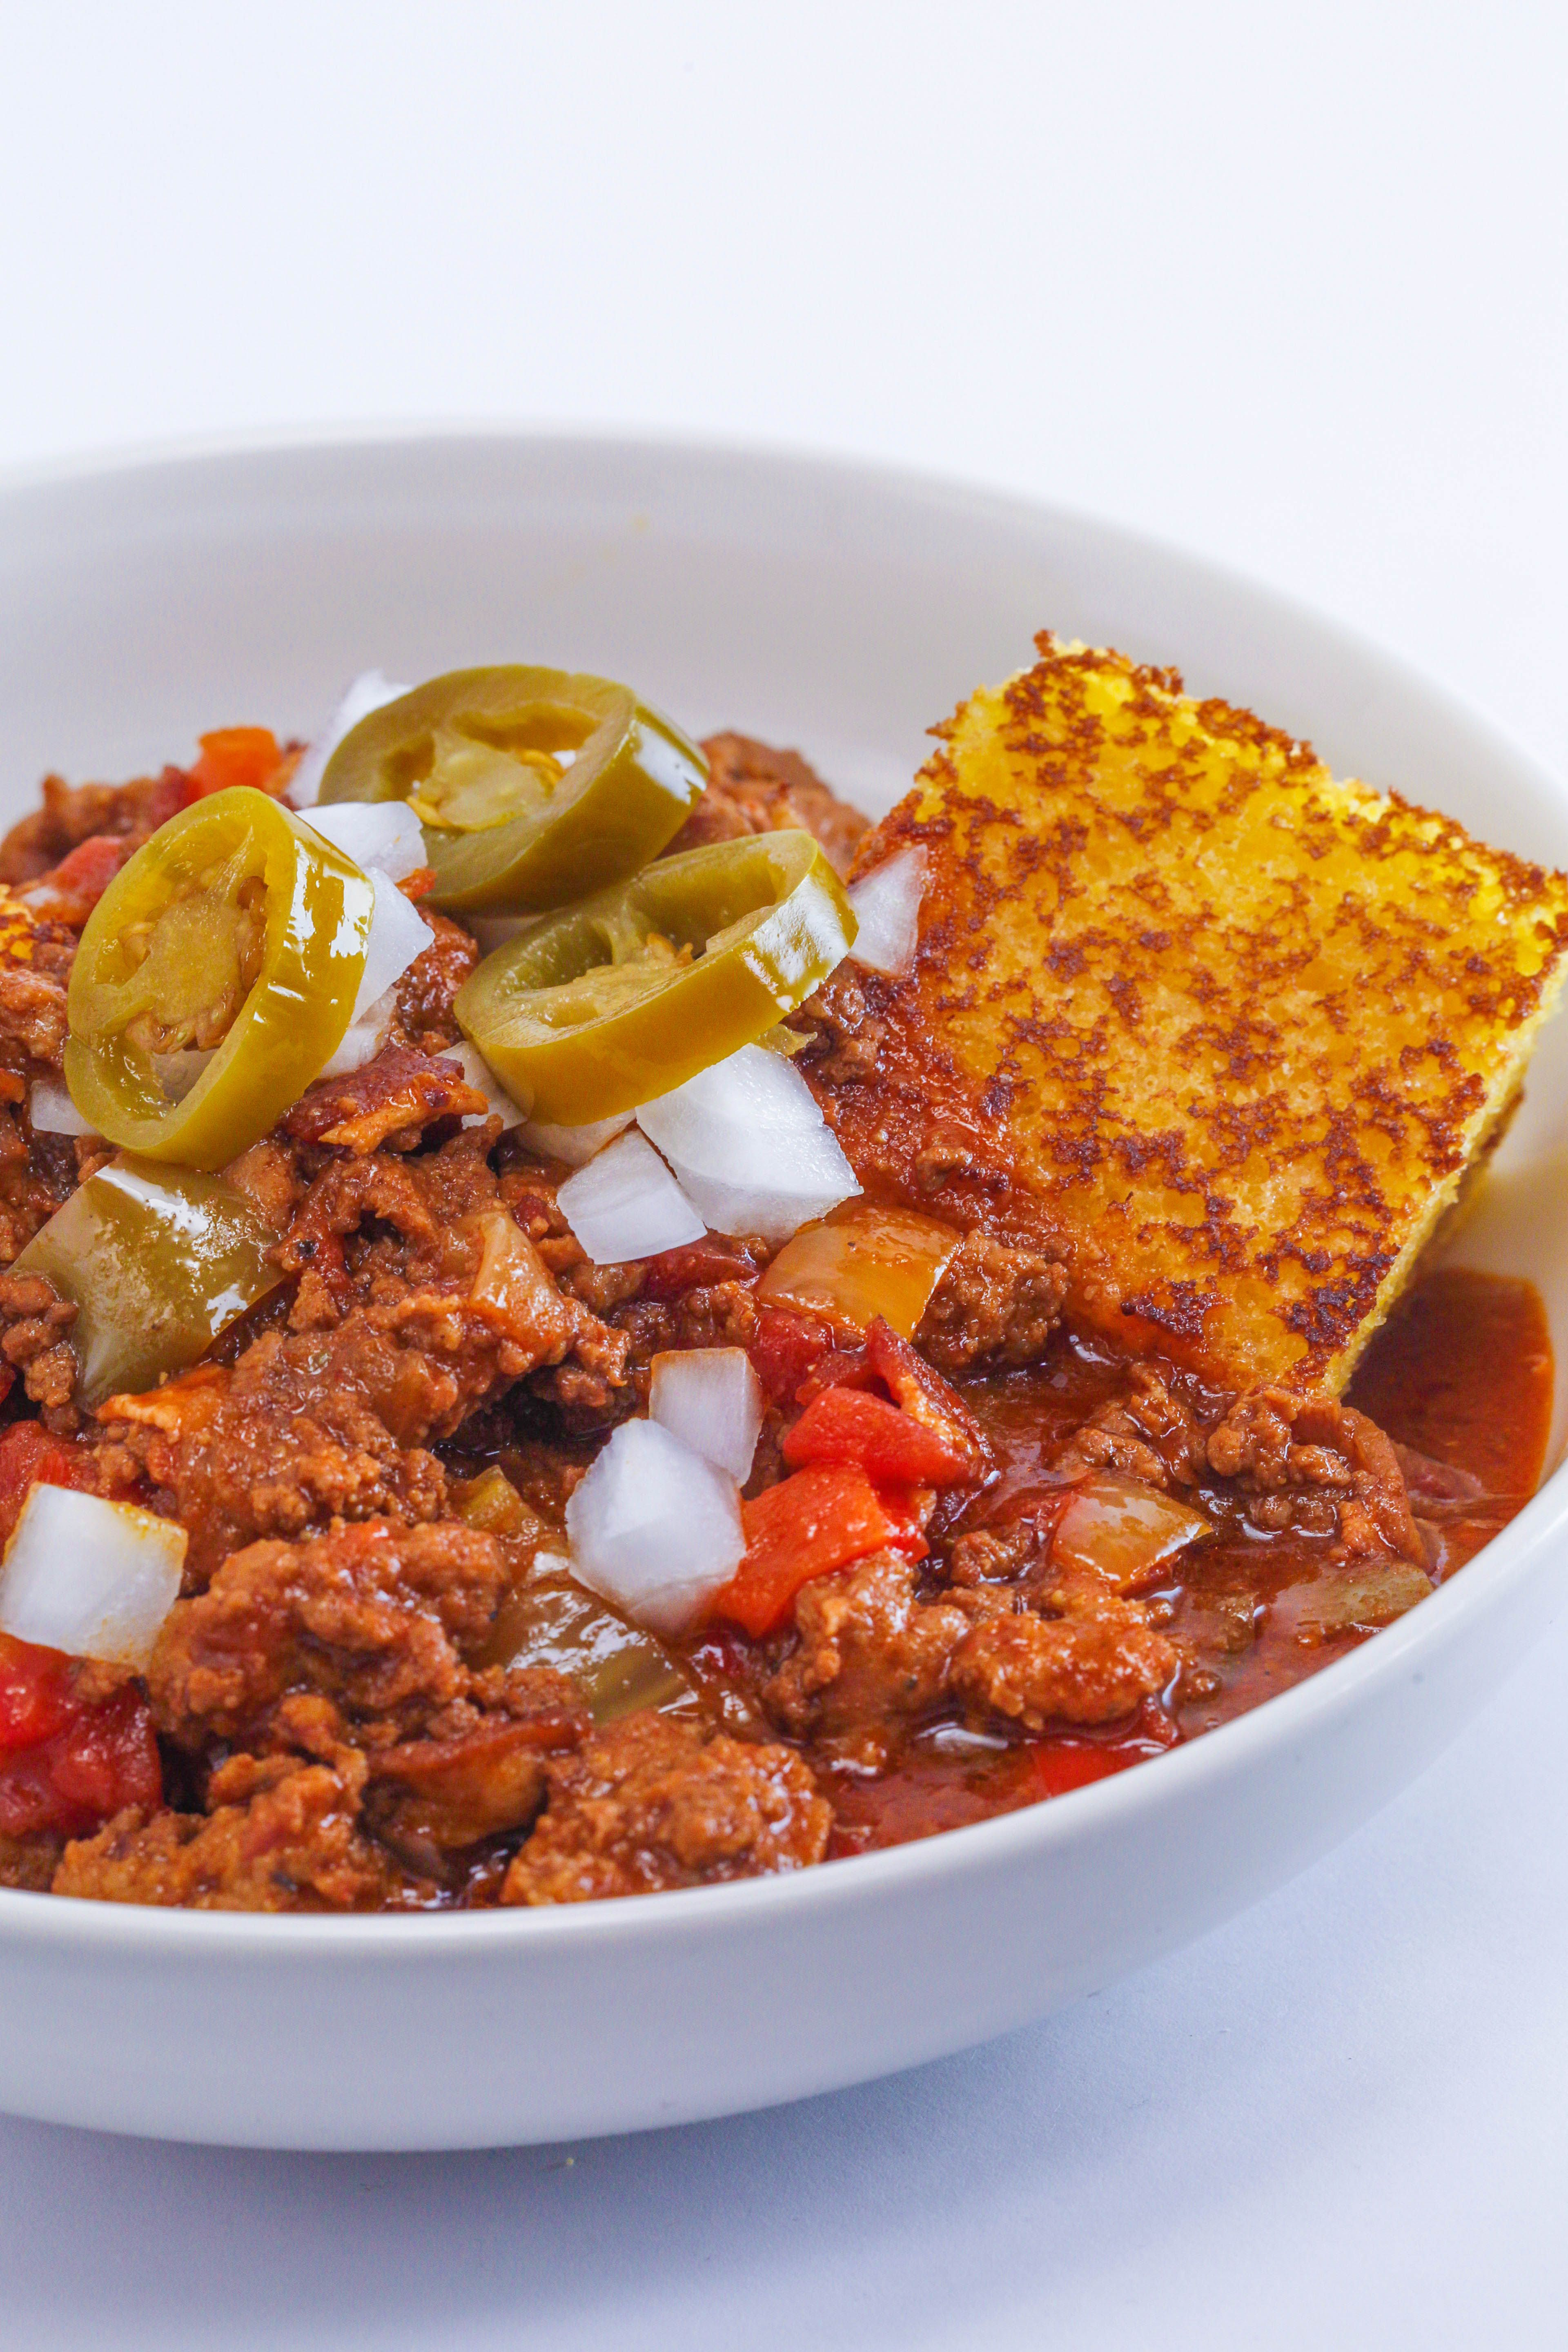 Rachael Ray S Serious Three Meat Chili Meat Chili Three Meat Chili Three Meat